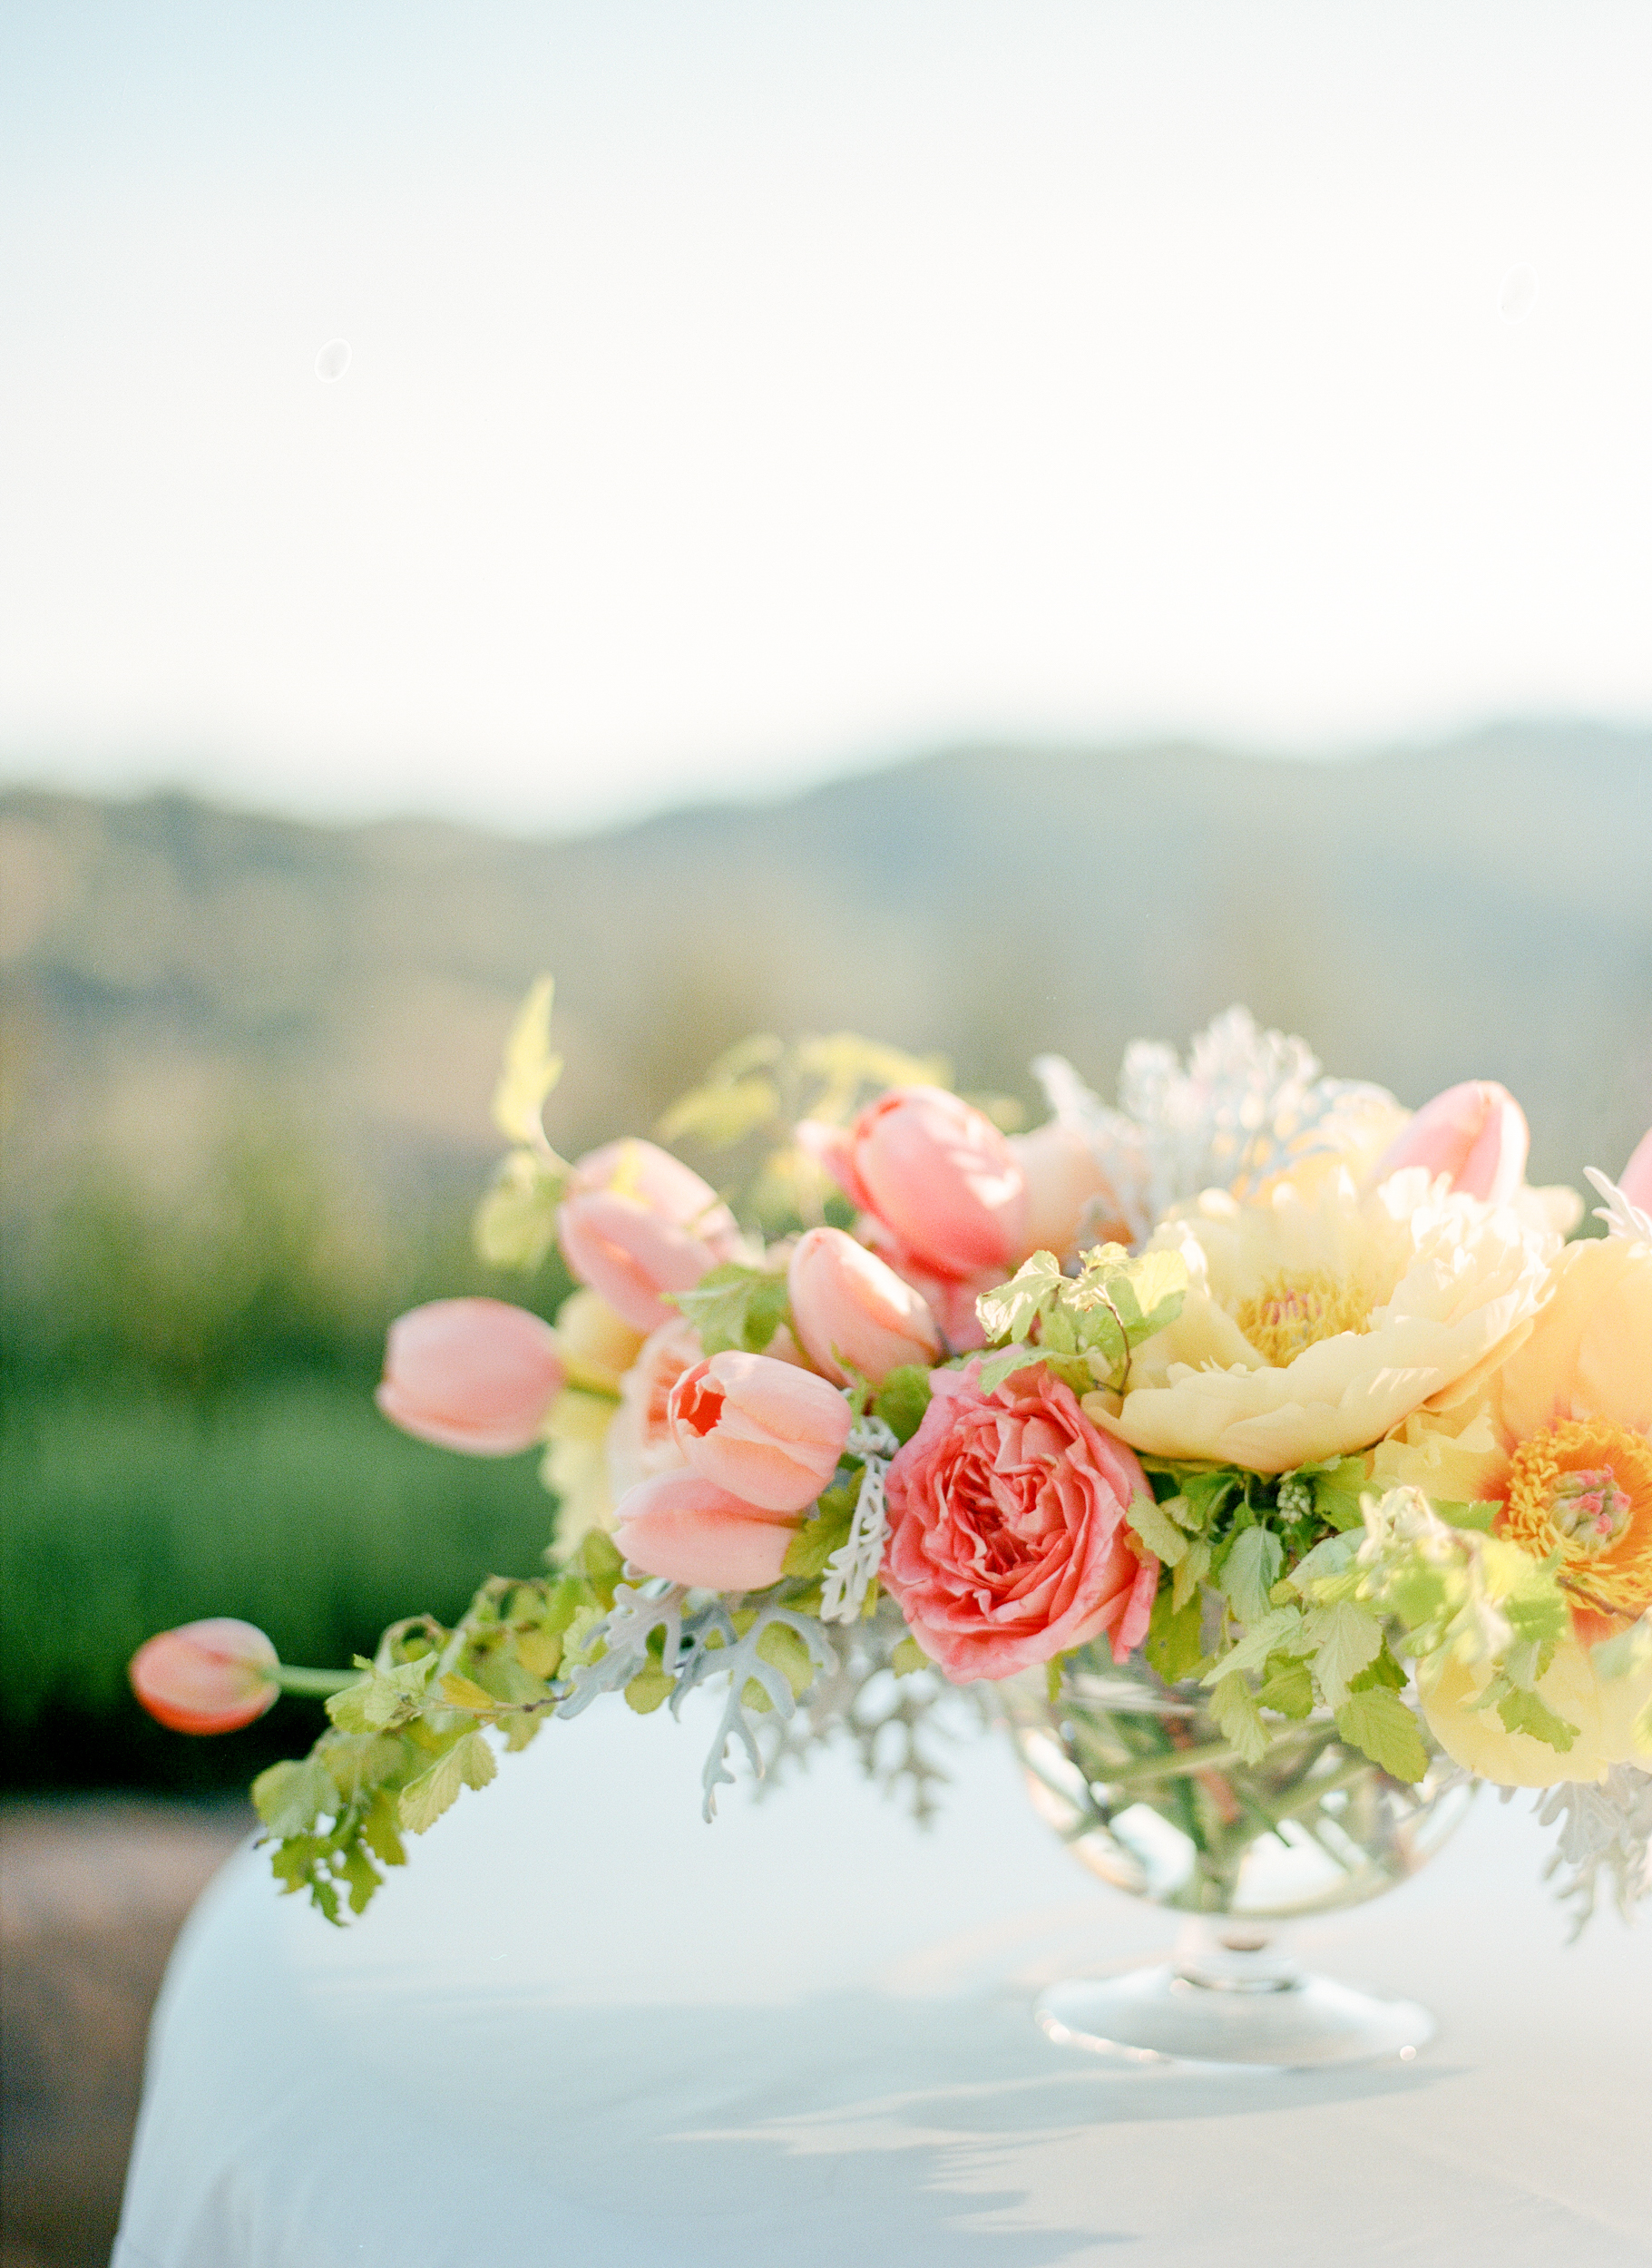 Colorful pastels highlighted the ceremony, especially in the beautiful floral centerpieces, by Kathleen Deery; photo by Sylvie Gil.